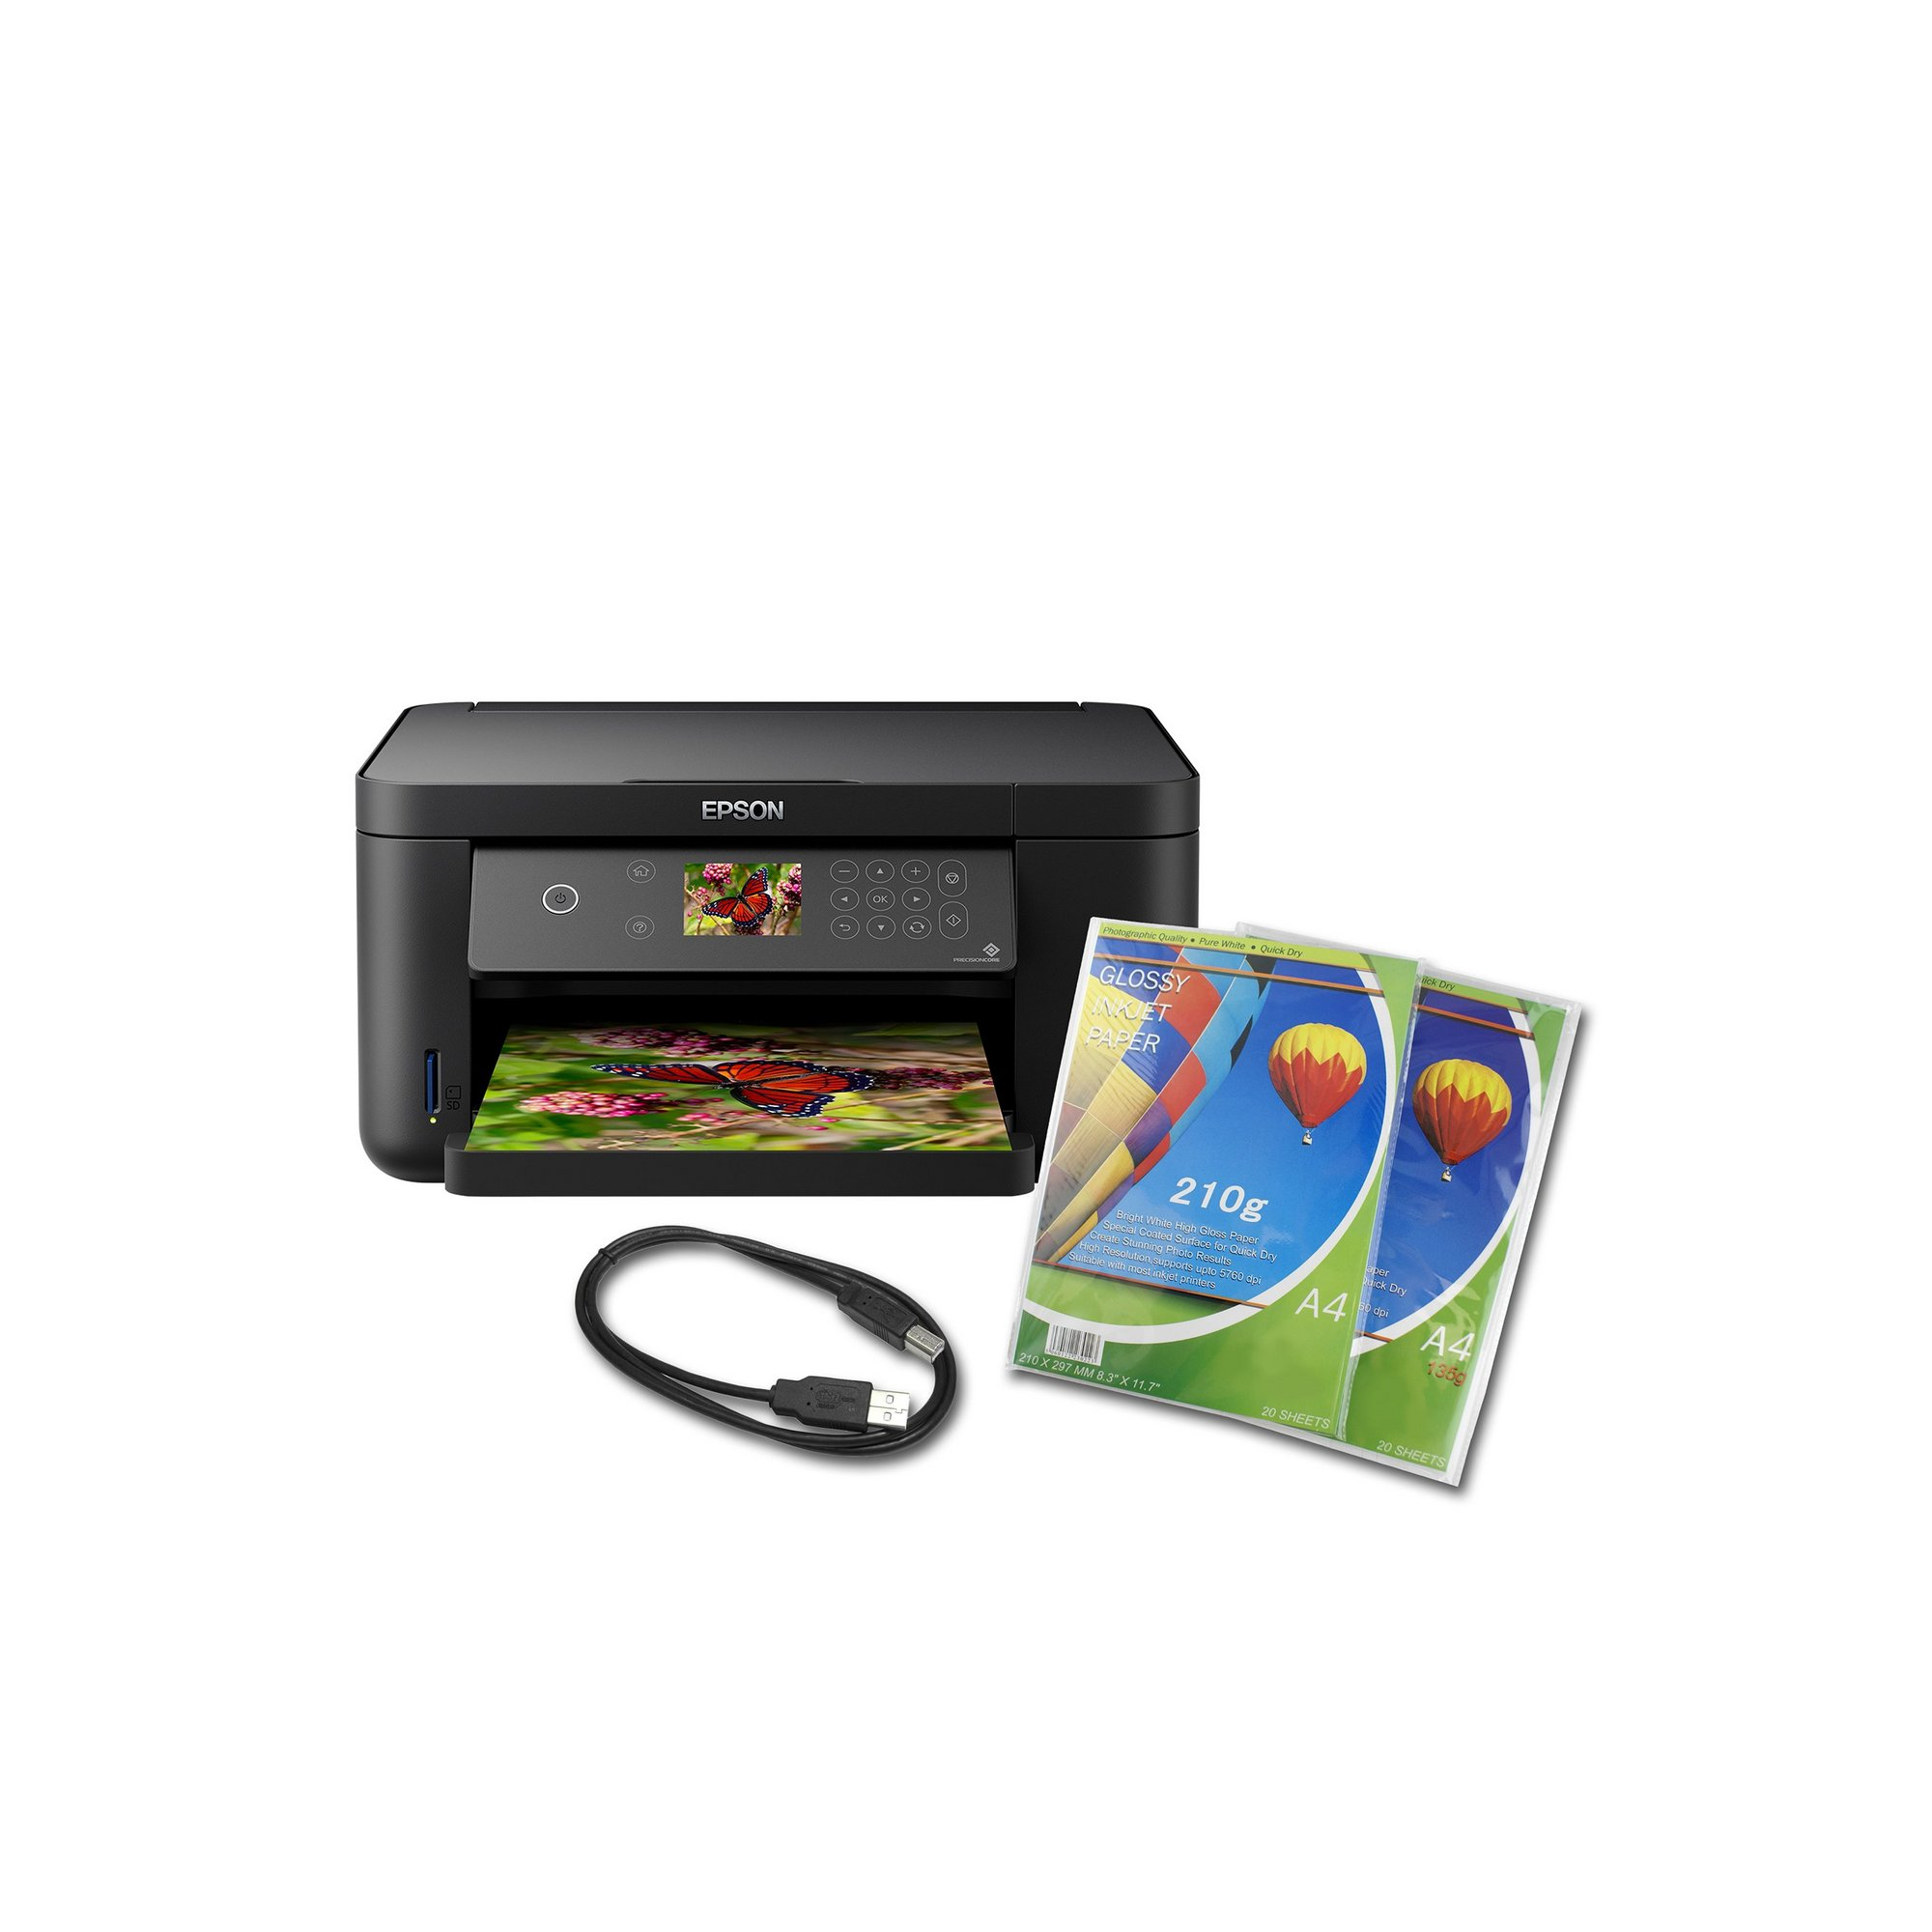 Image of Epson XP-5100 All-in-One with Duplex Wireless Printer Bundle